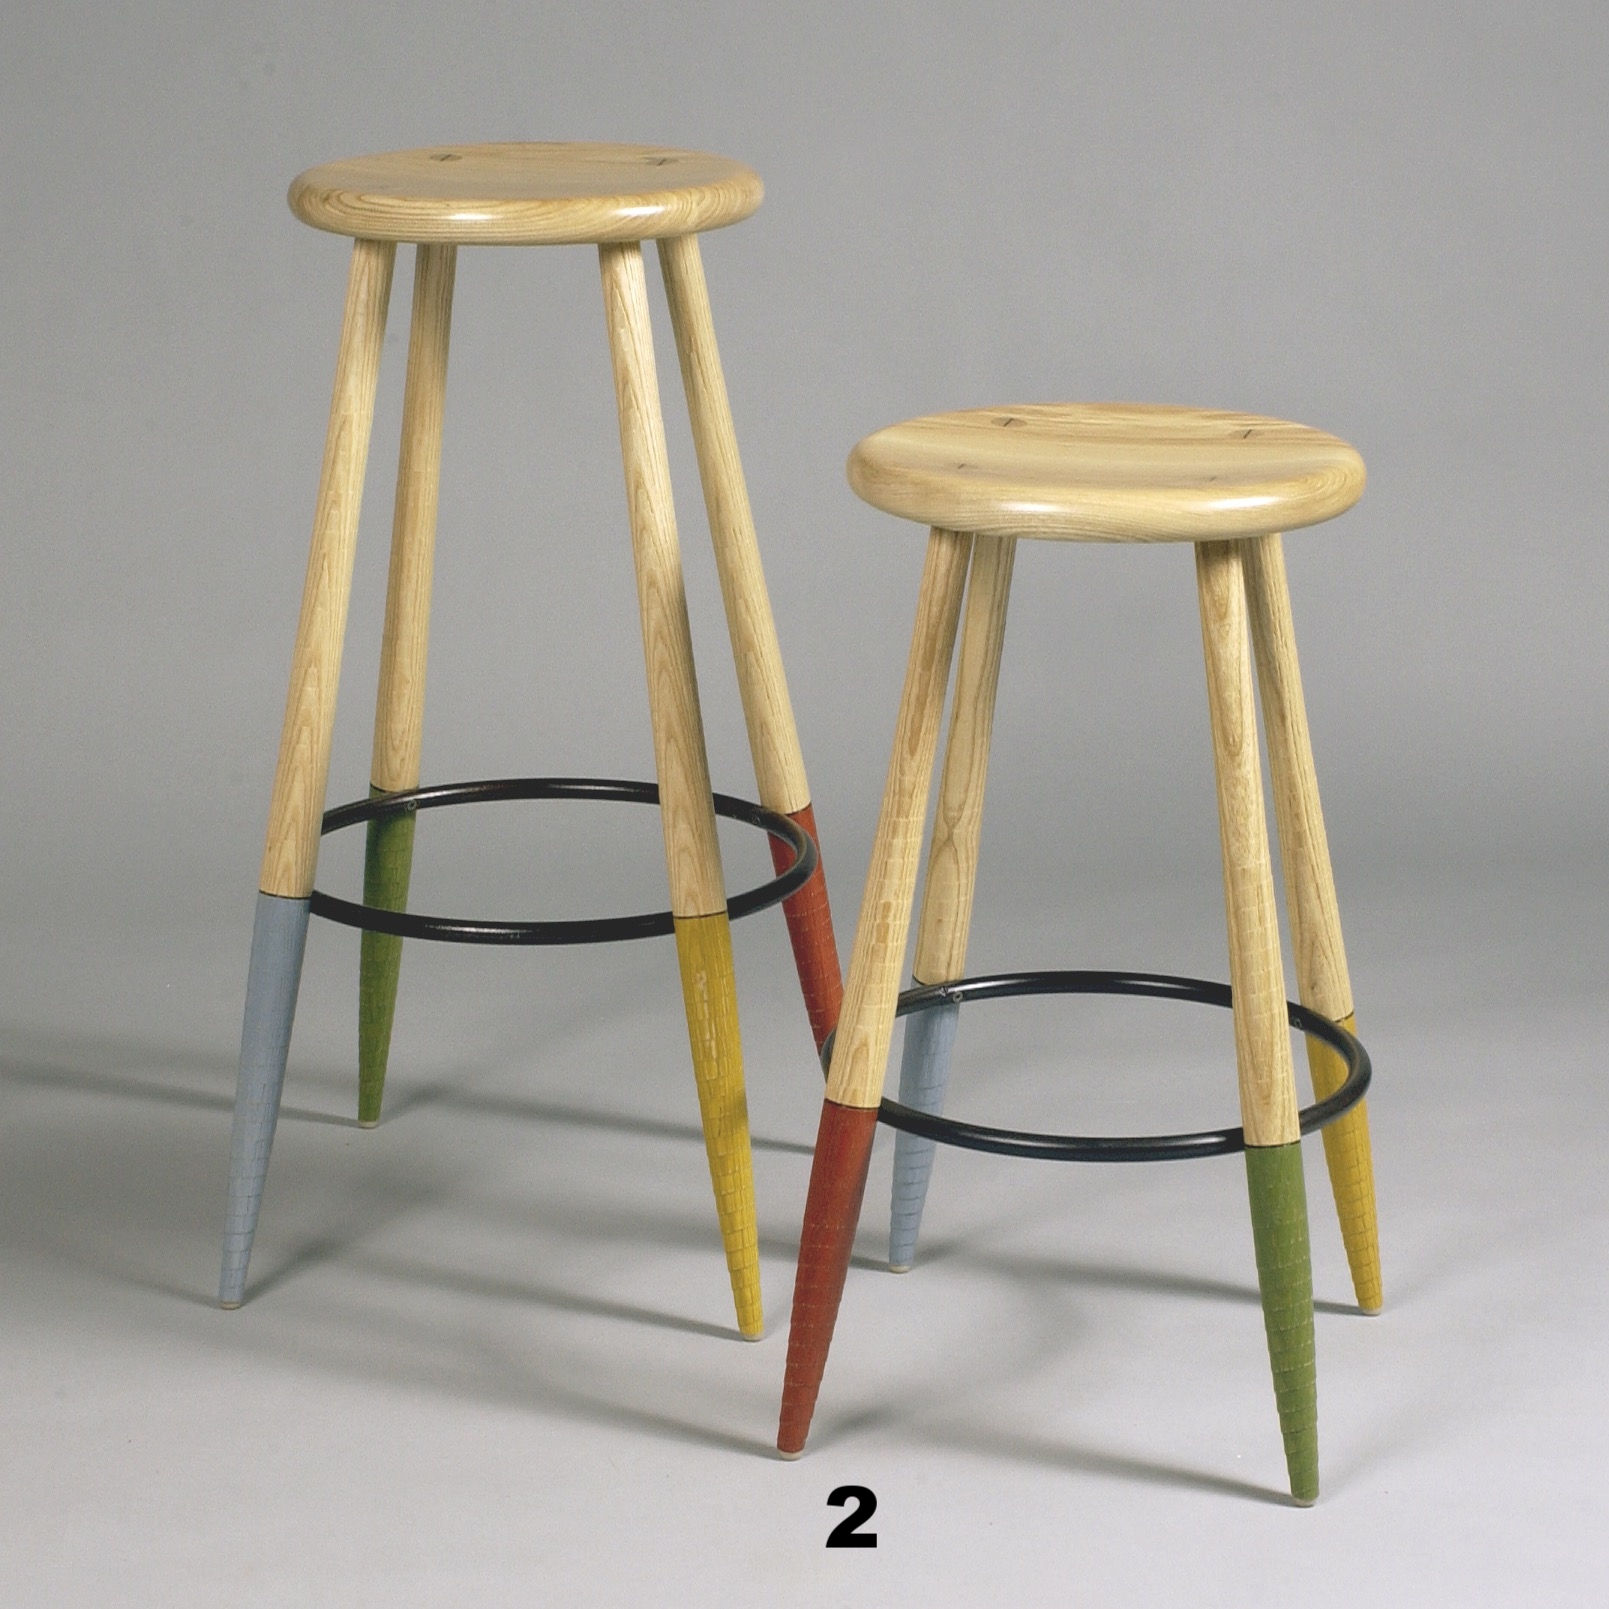 stools-painted-spindle-0.jpg